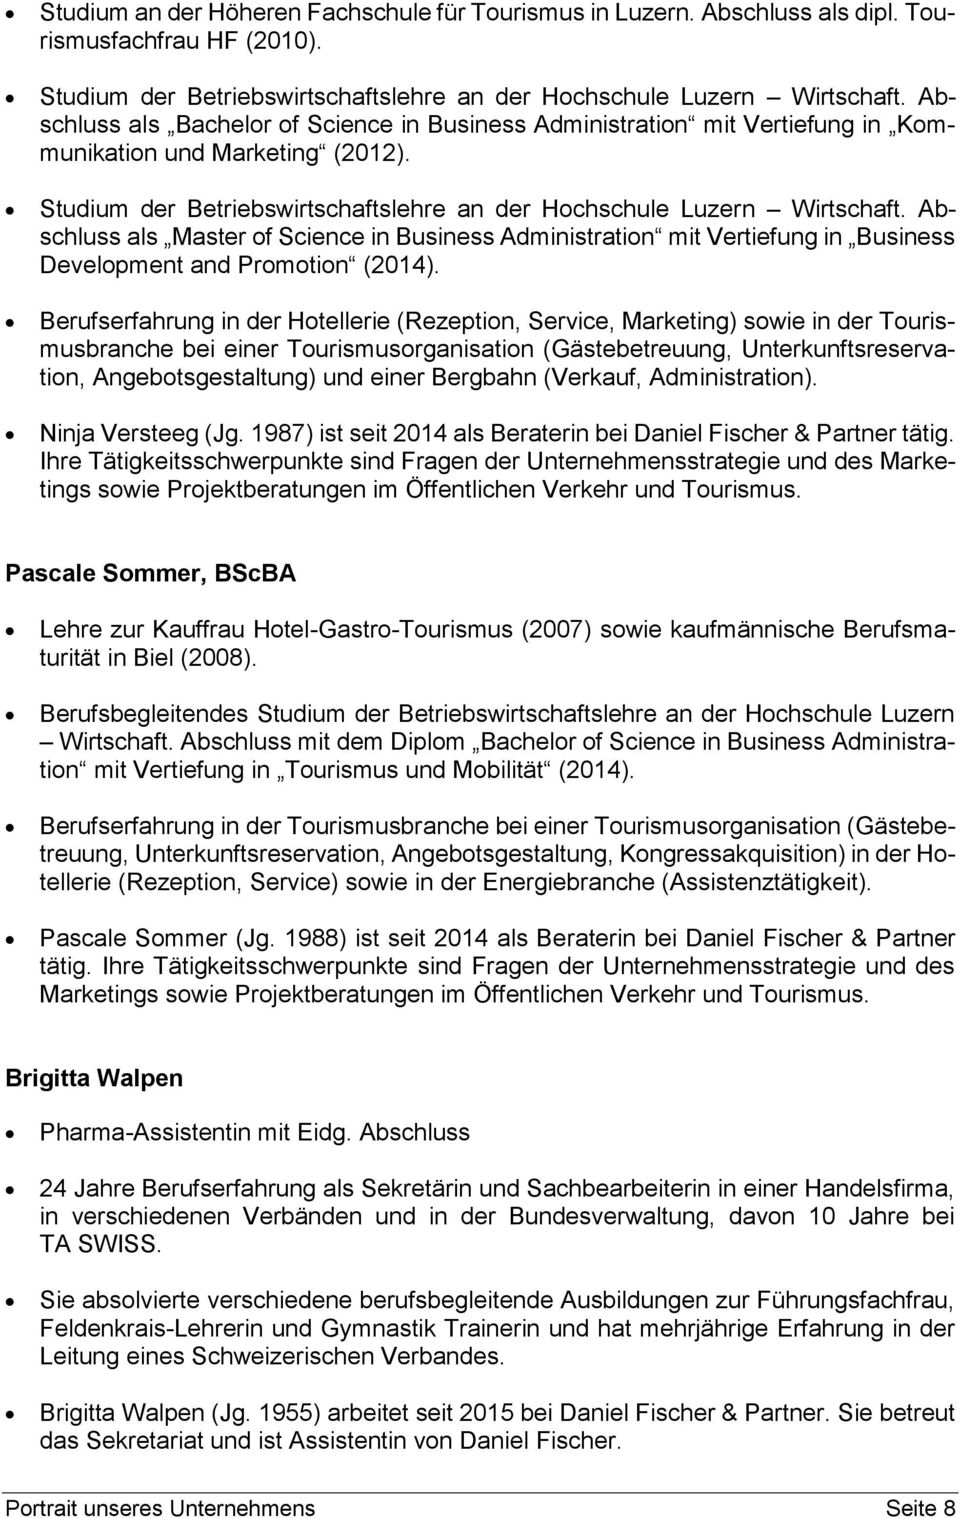 Abschluss als Master of Science in Business Administration mit Vertiefung in Business Development and Promotion (2014).